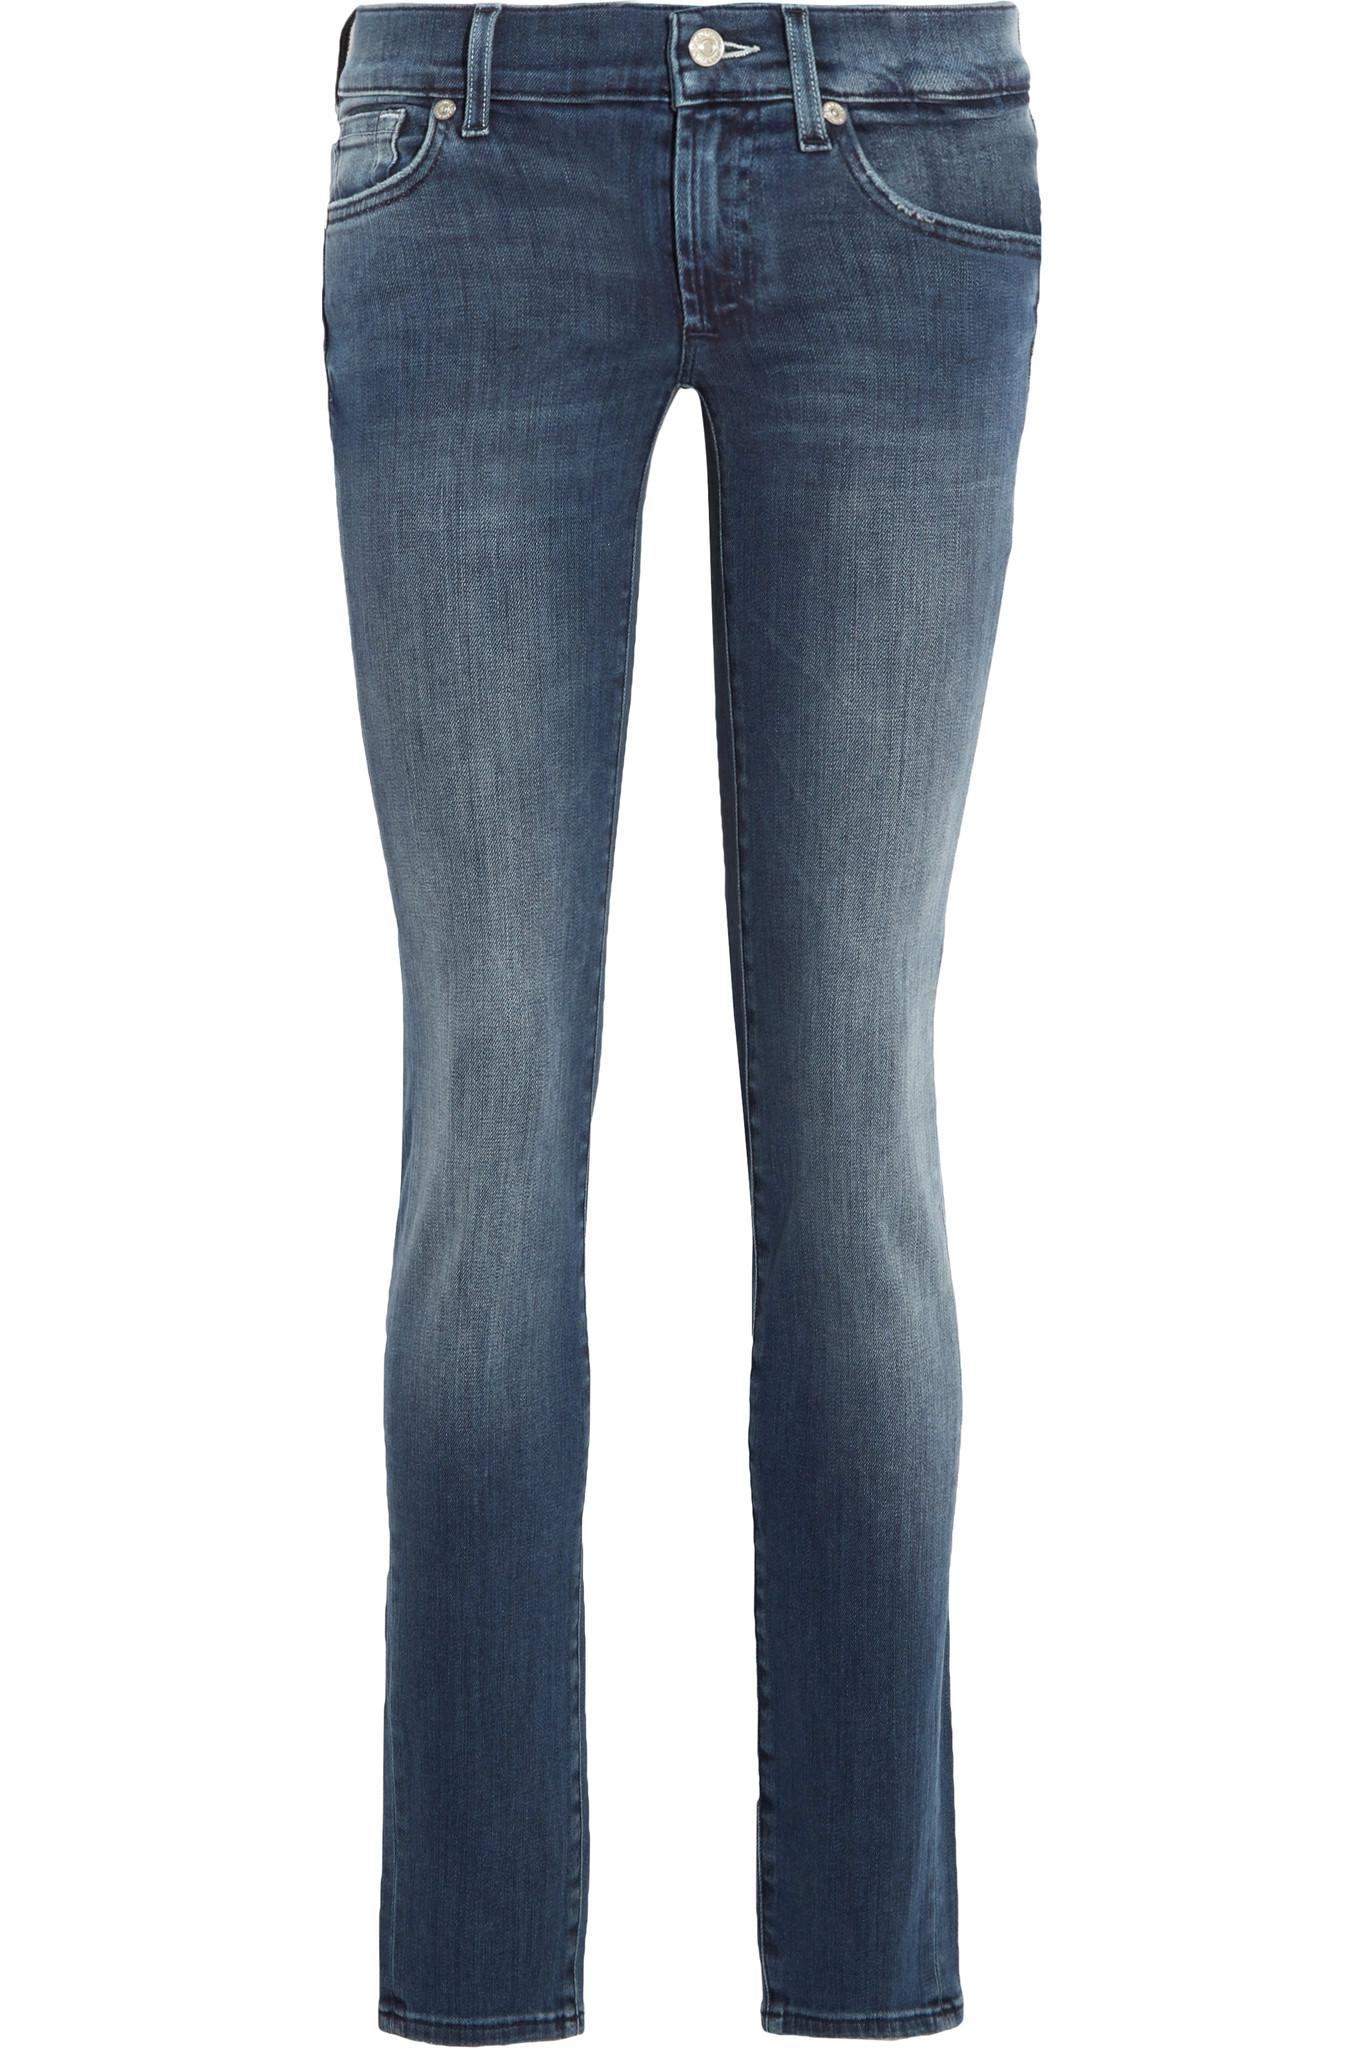 7 for all mankind roxanne low rise skinny jeans in blue lyst. Black Bedroom Furniture Sets. Home Design Ideas